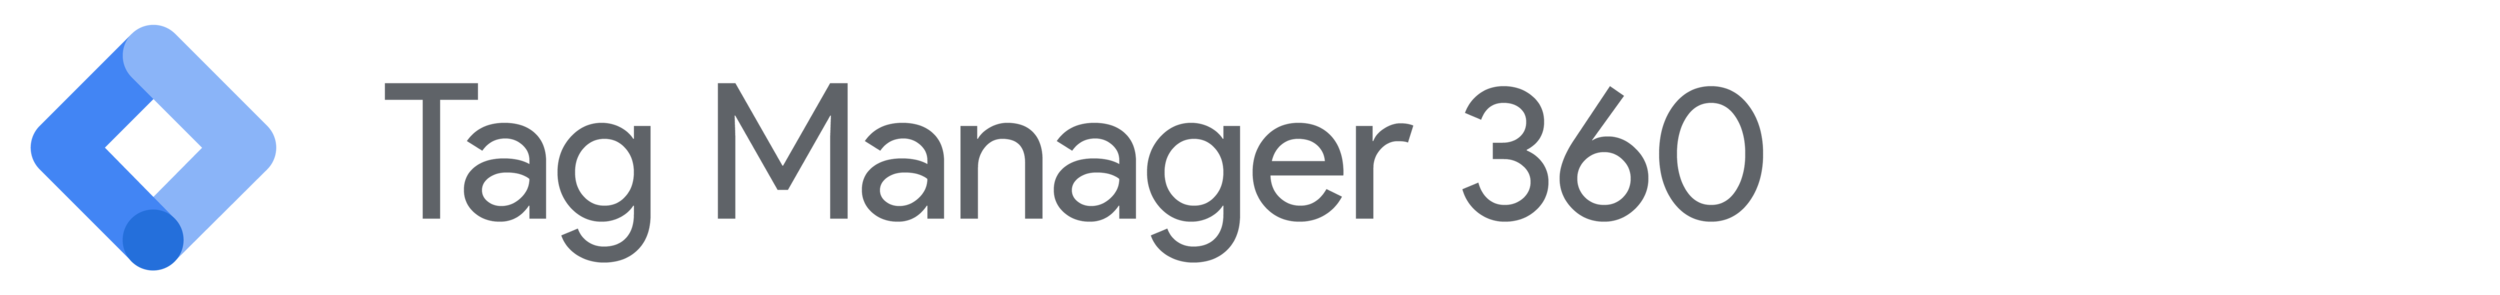 TagManager360_01.png